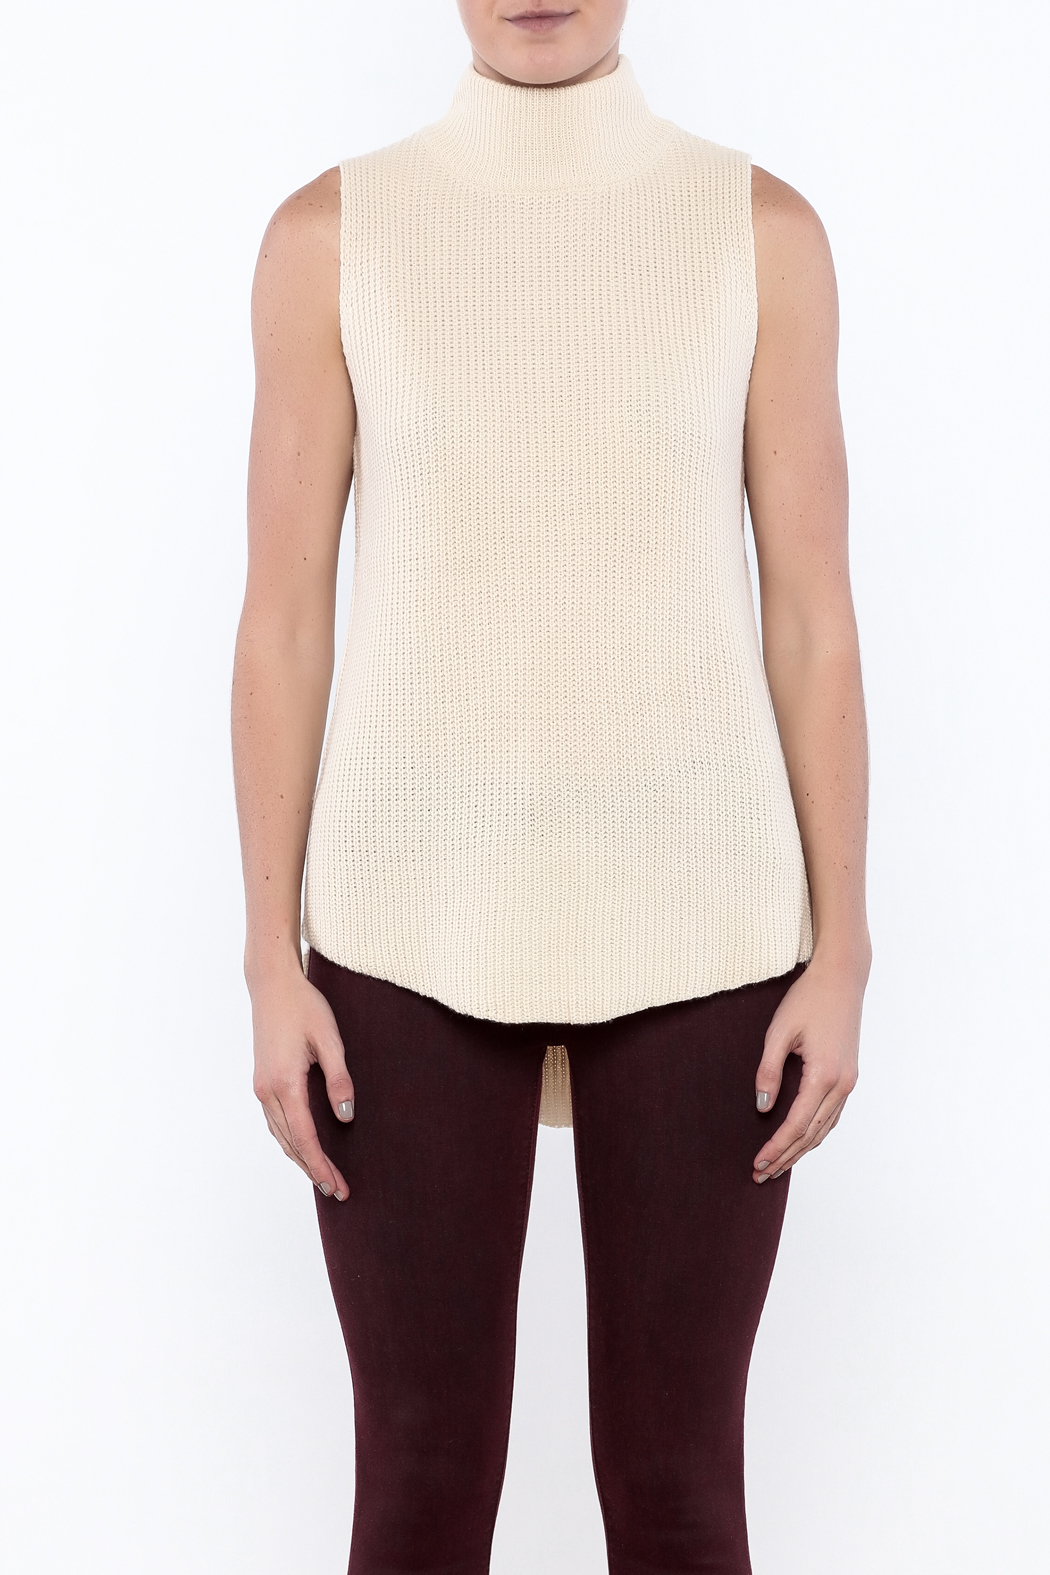 Cotton candy sleeveless mock sweater from new jersey by for Sleeveless mock turtleneck shirts